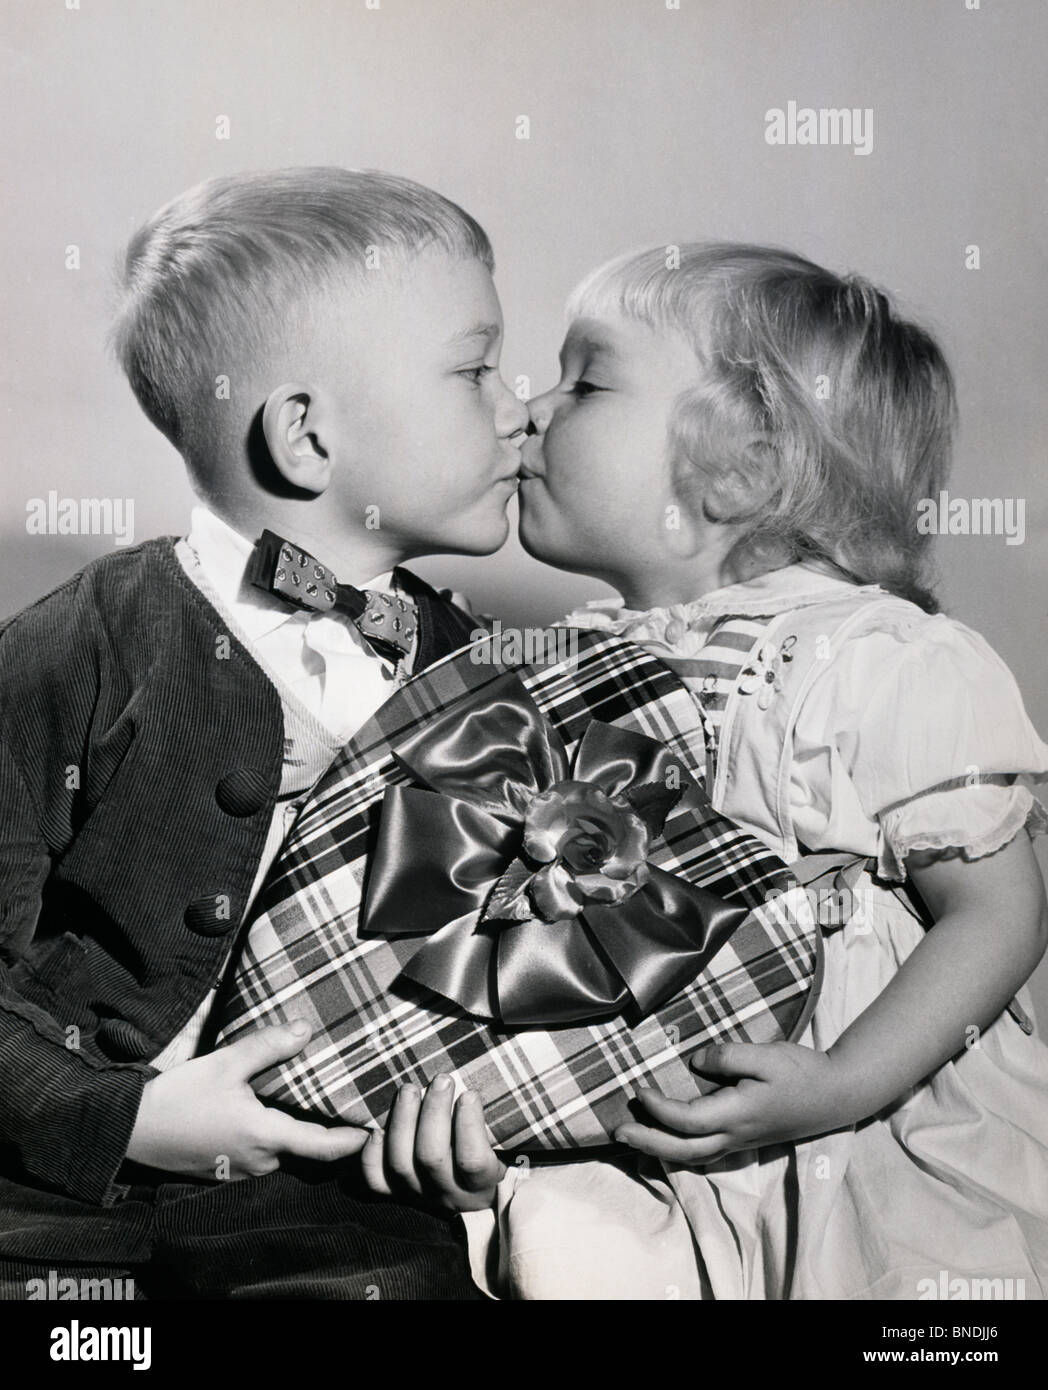 Close Up Of A Boy And A Girl Holding A Valentine Gift And Kissing